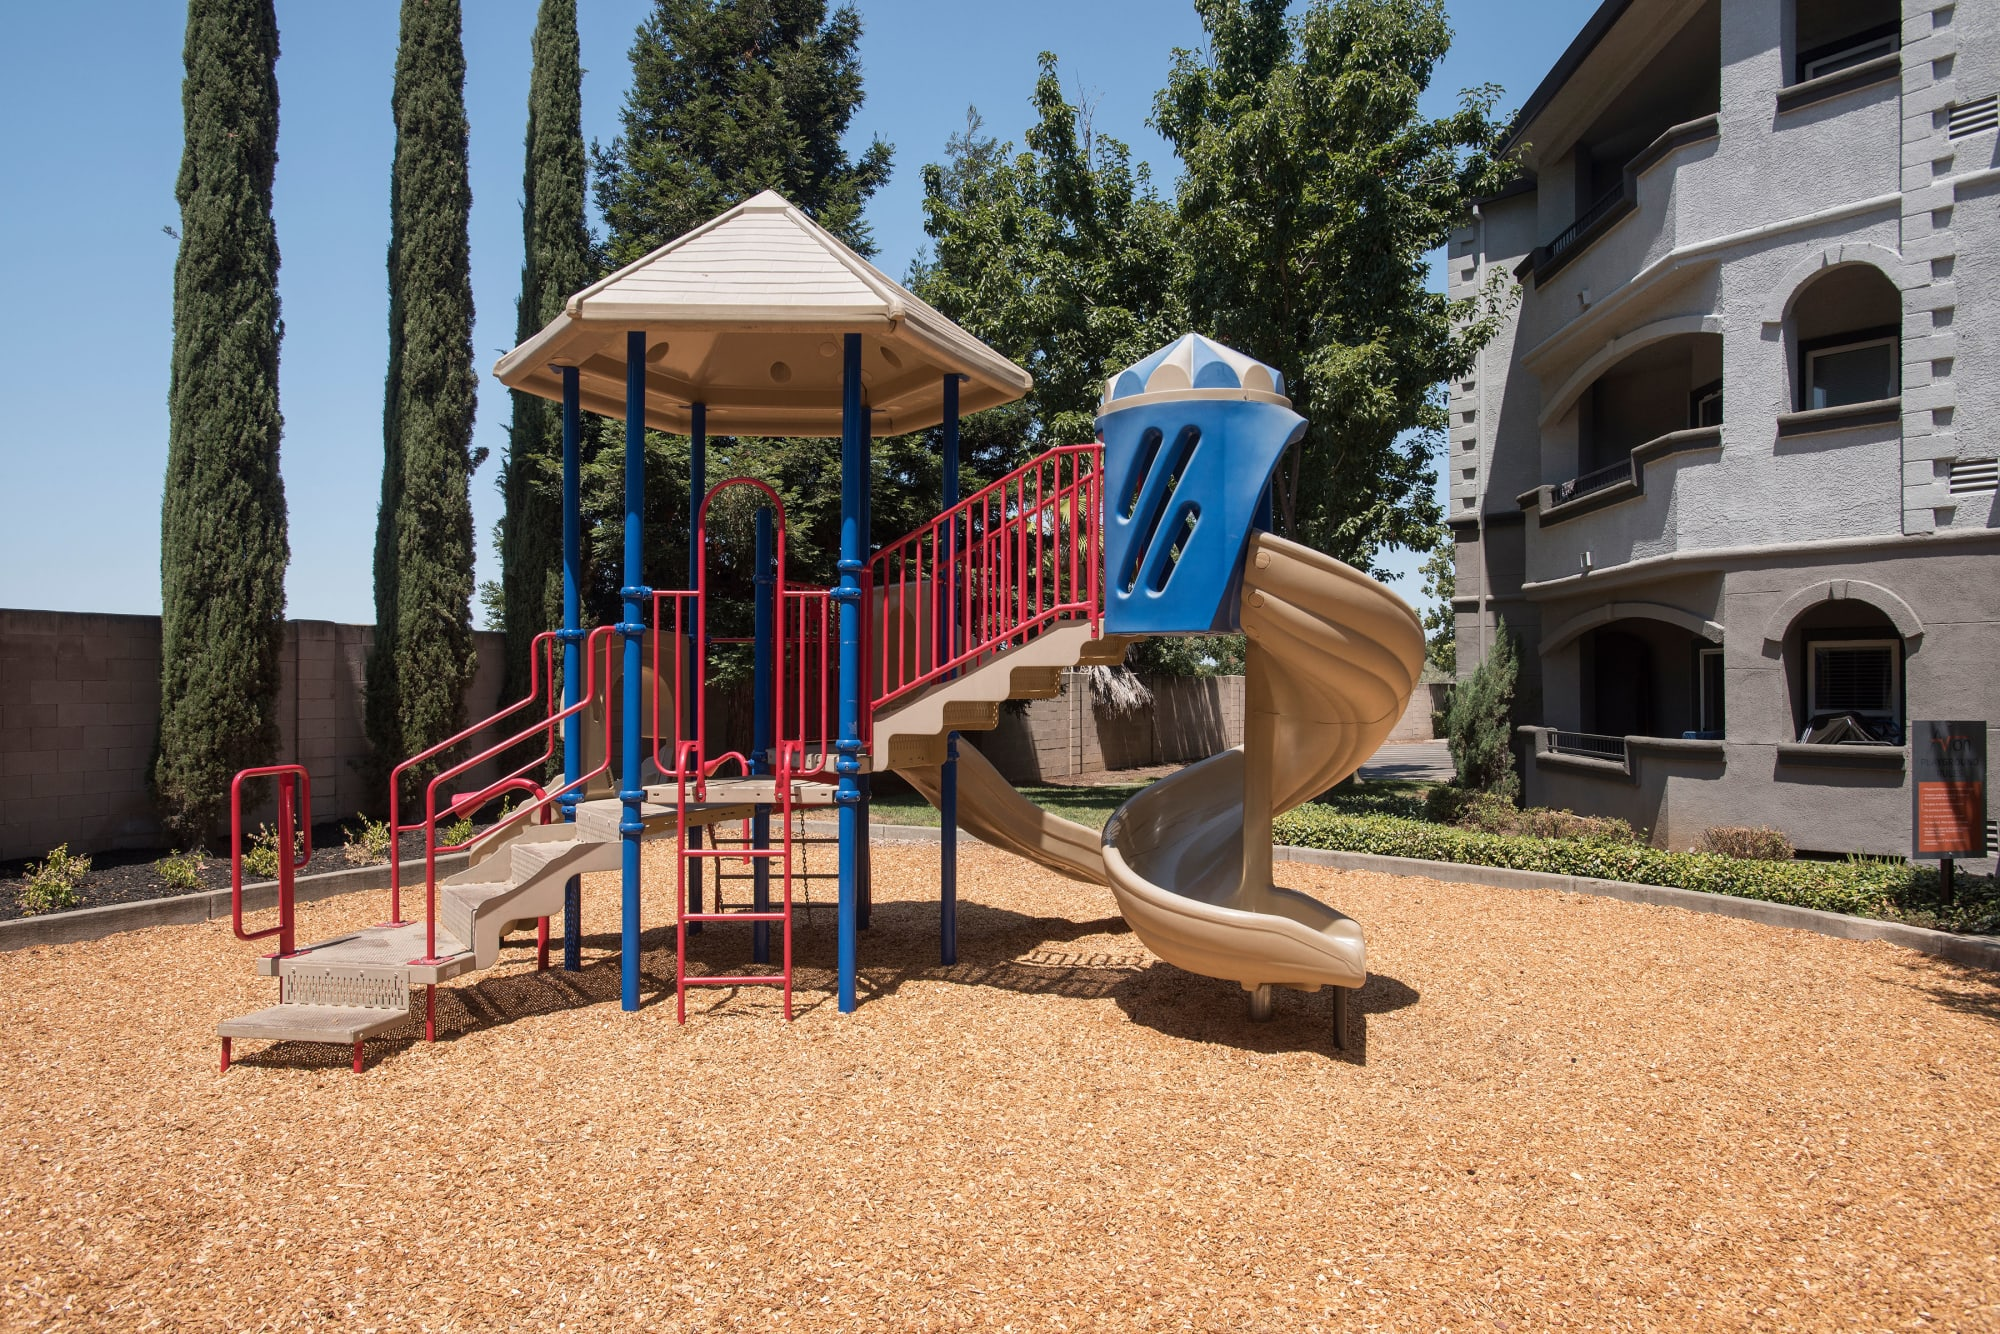 Community playground in Rancho Cordova, California at Avion Apartments